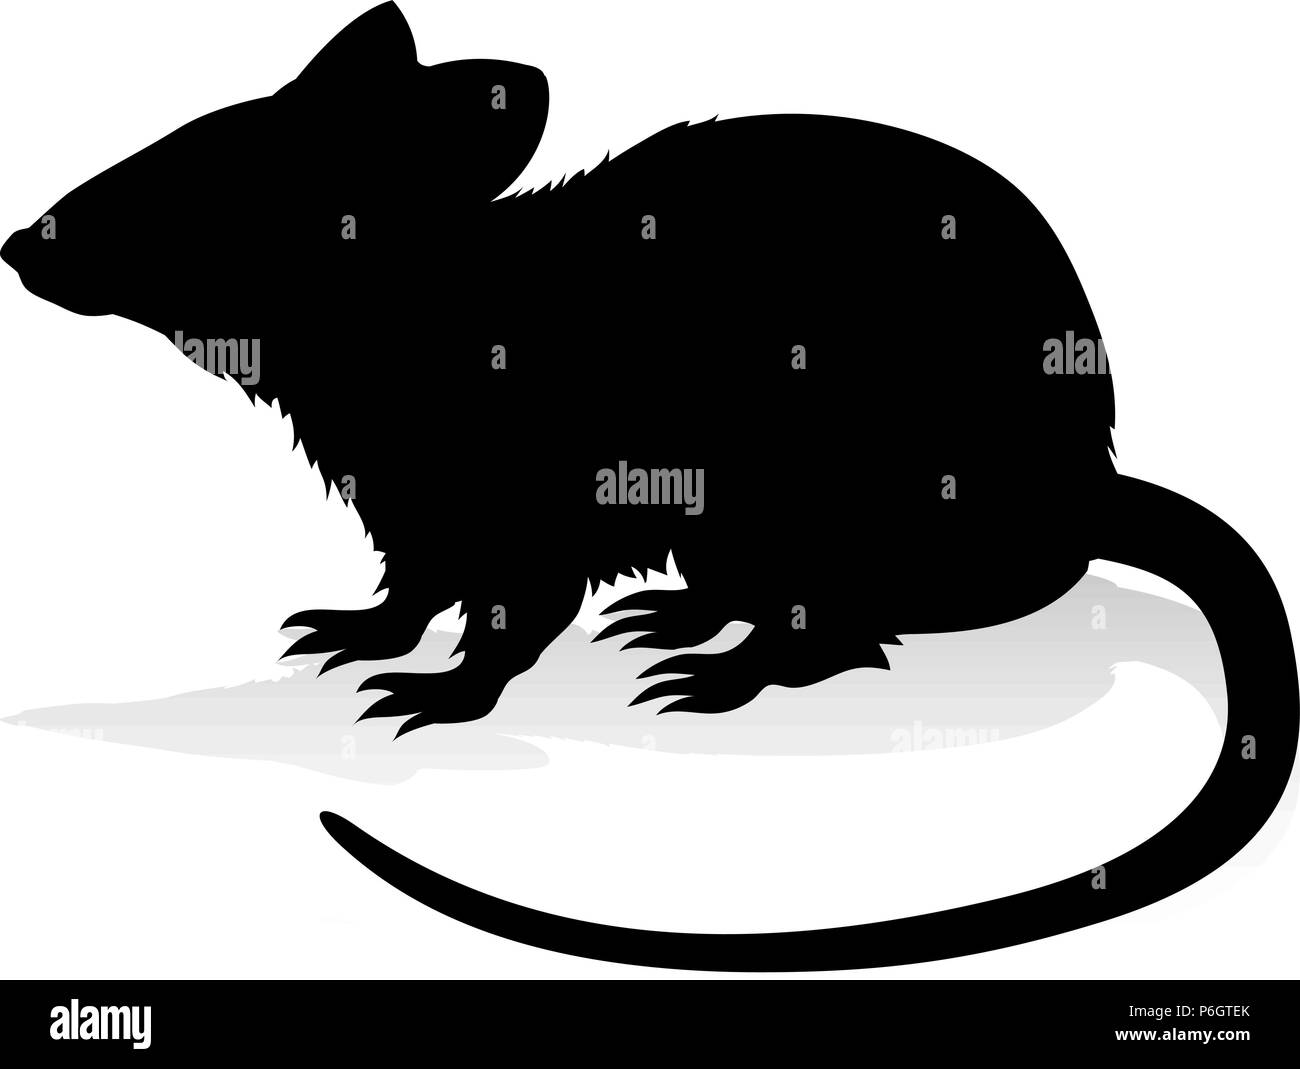 Rat Rodent Animal Silhouette - Stock Vector